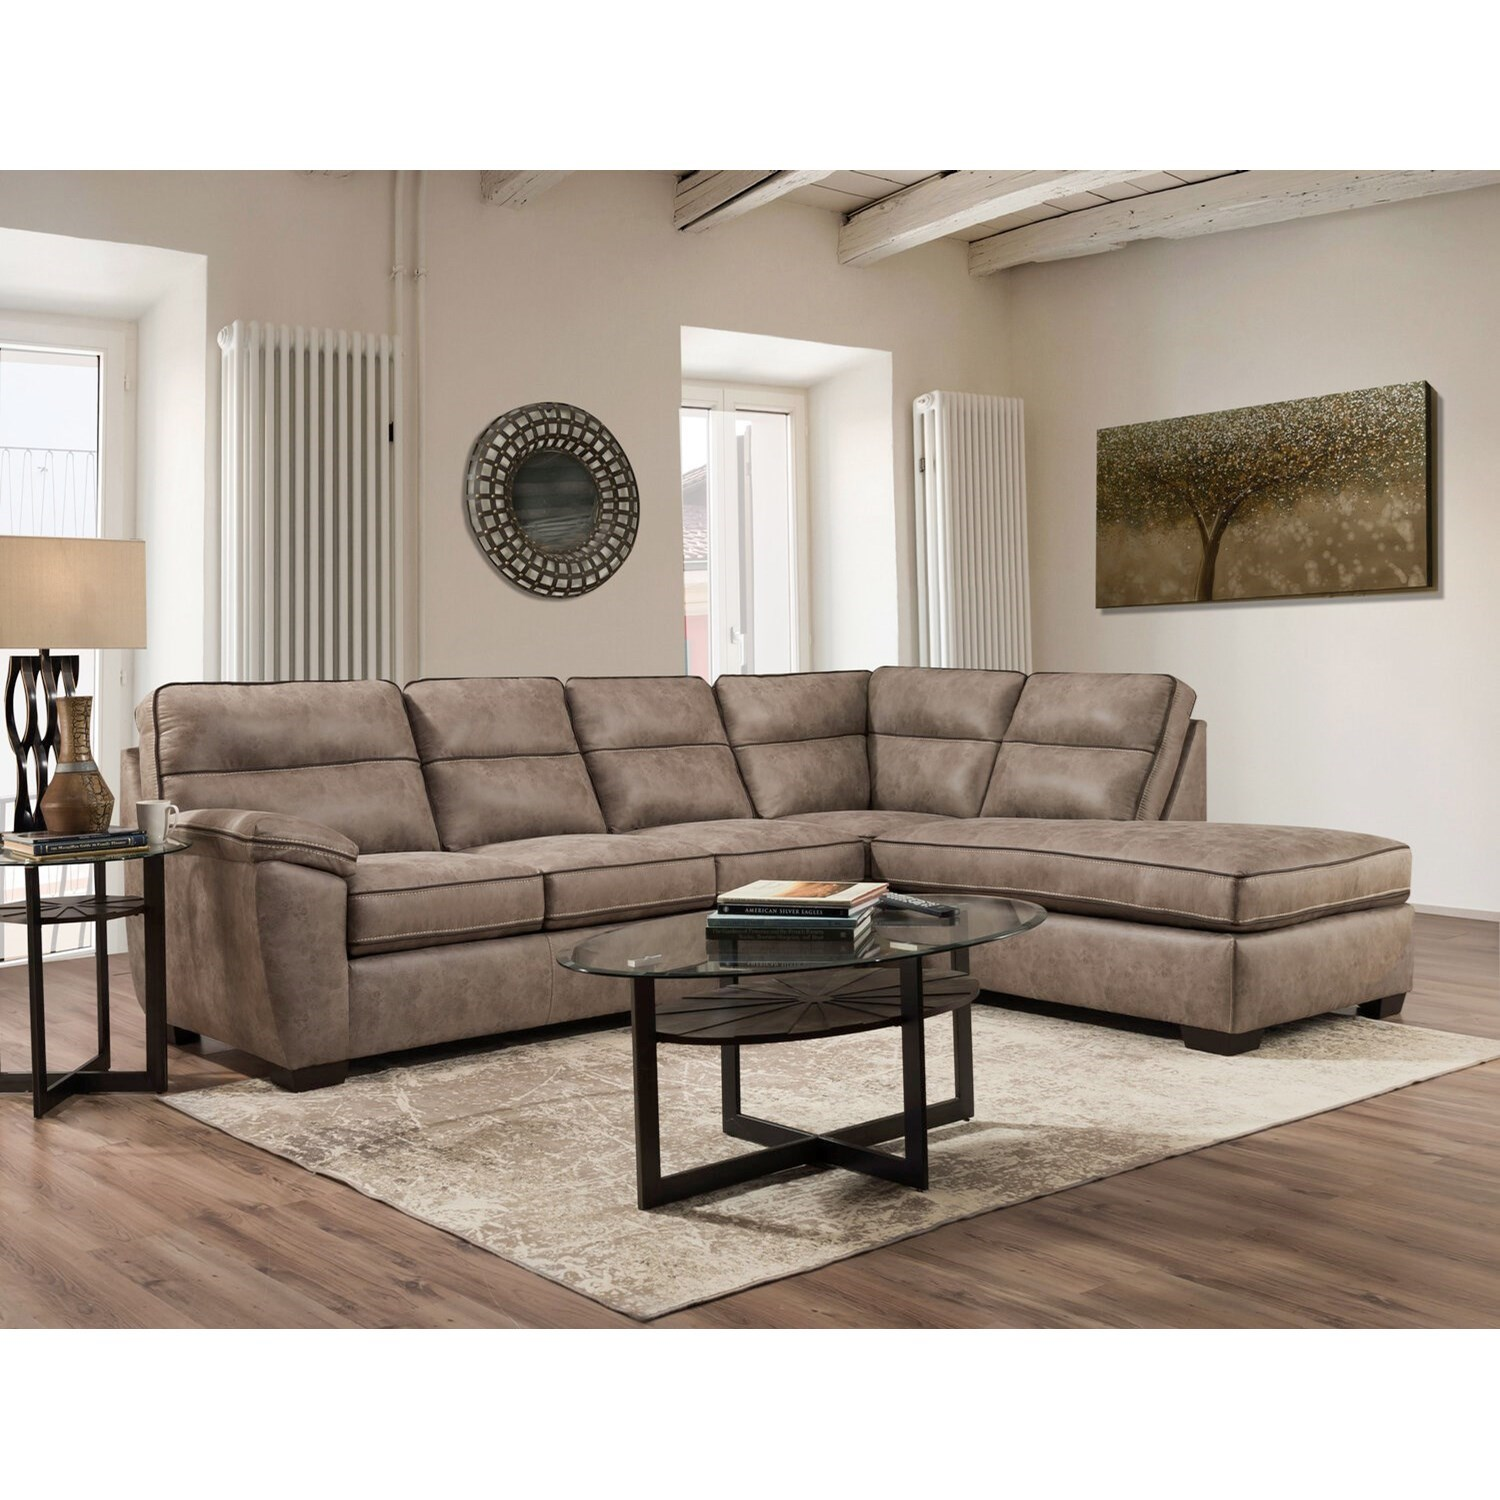 6000 2-Piece Sectional by Peak Living at Prime Brothers Furniture